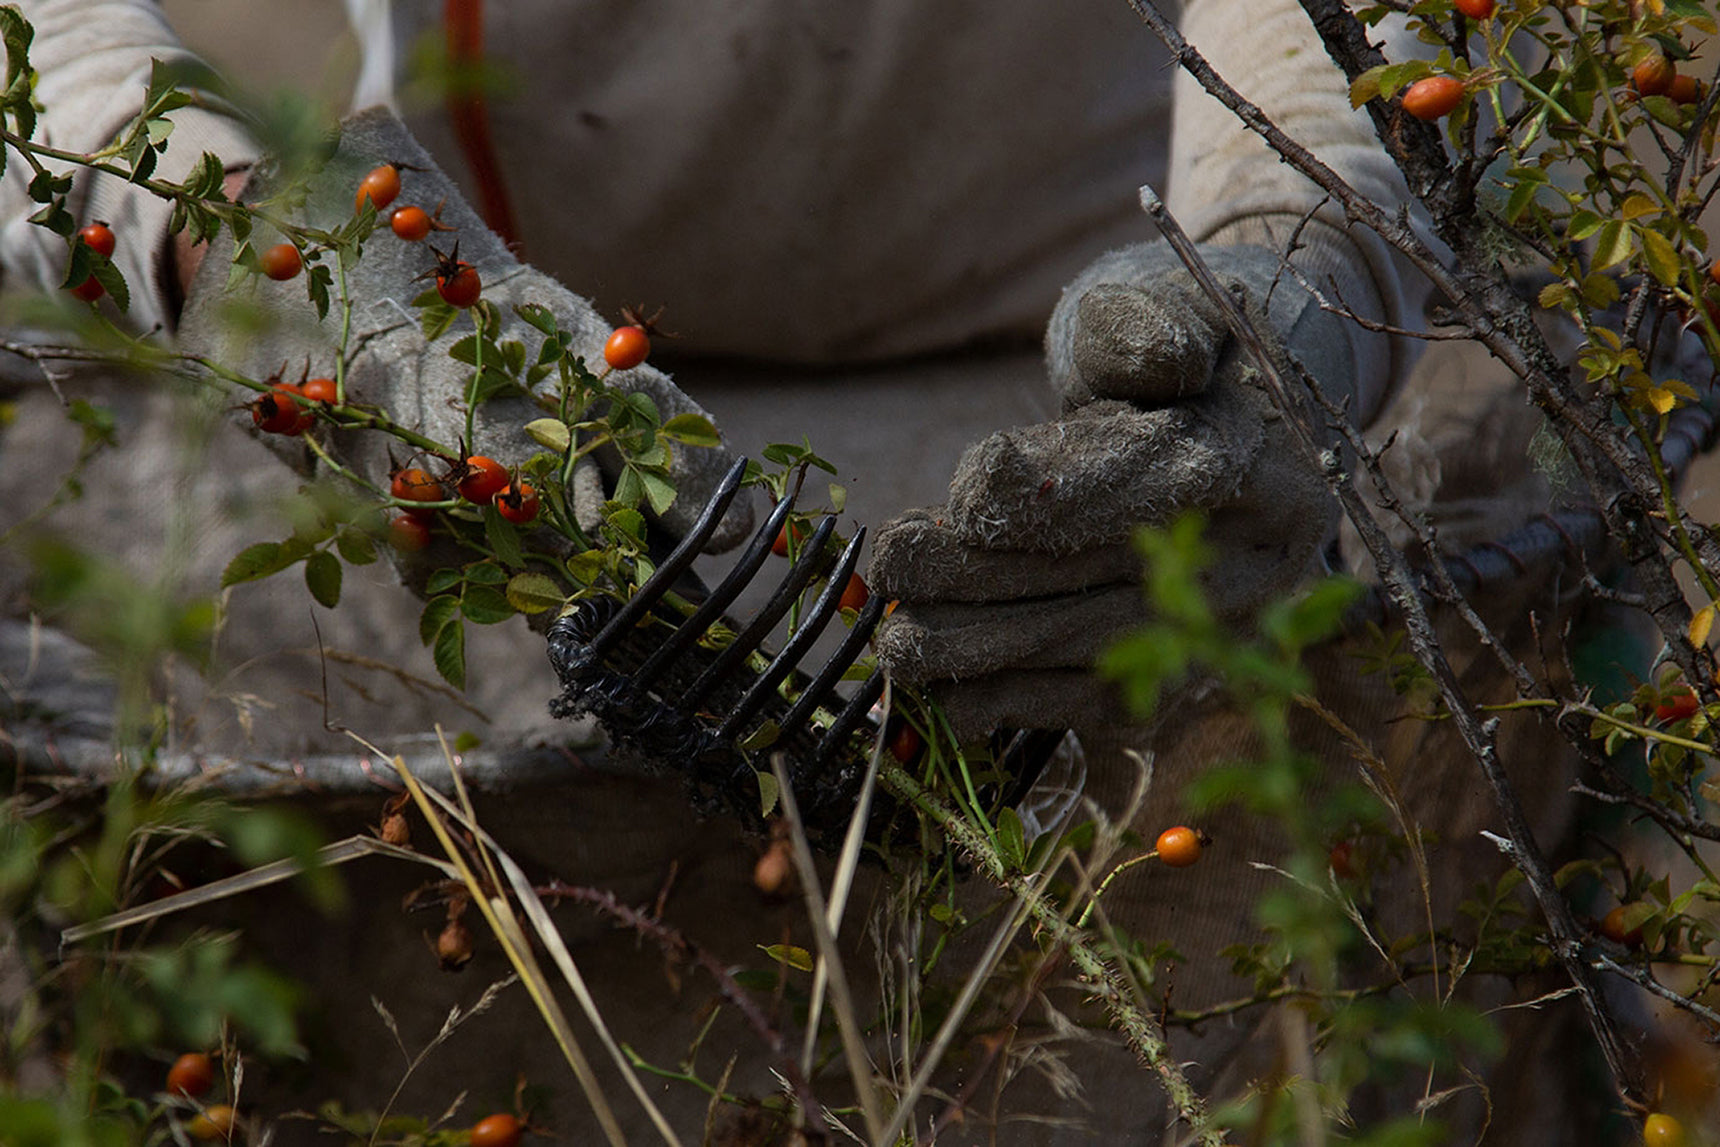 protective gear, gloves to collect the rosehip